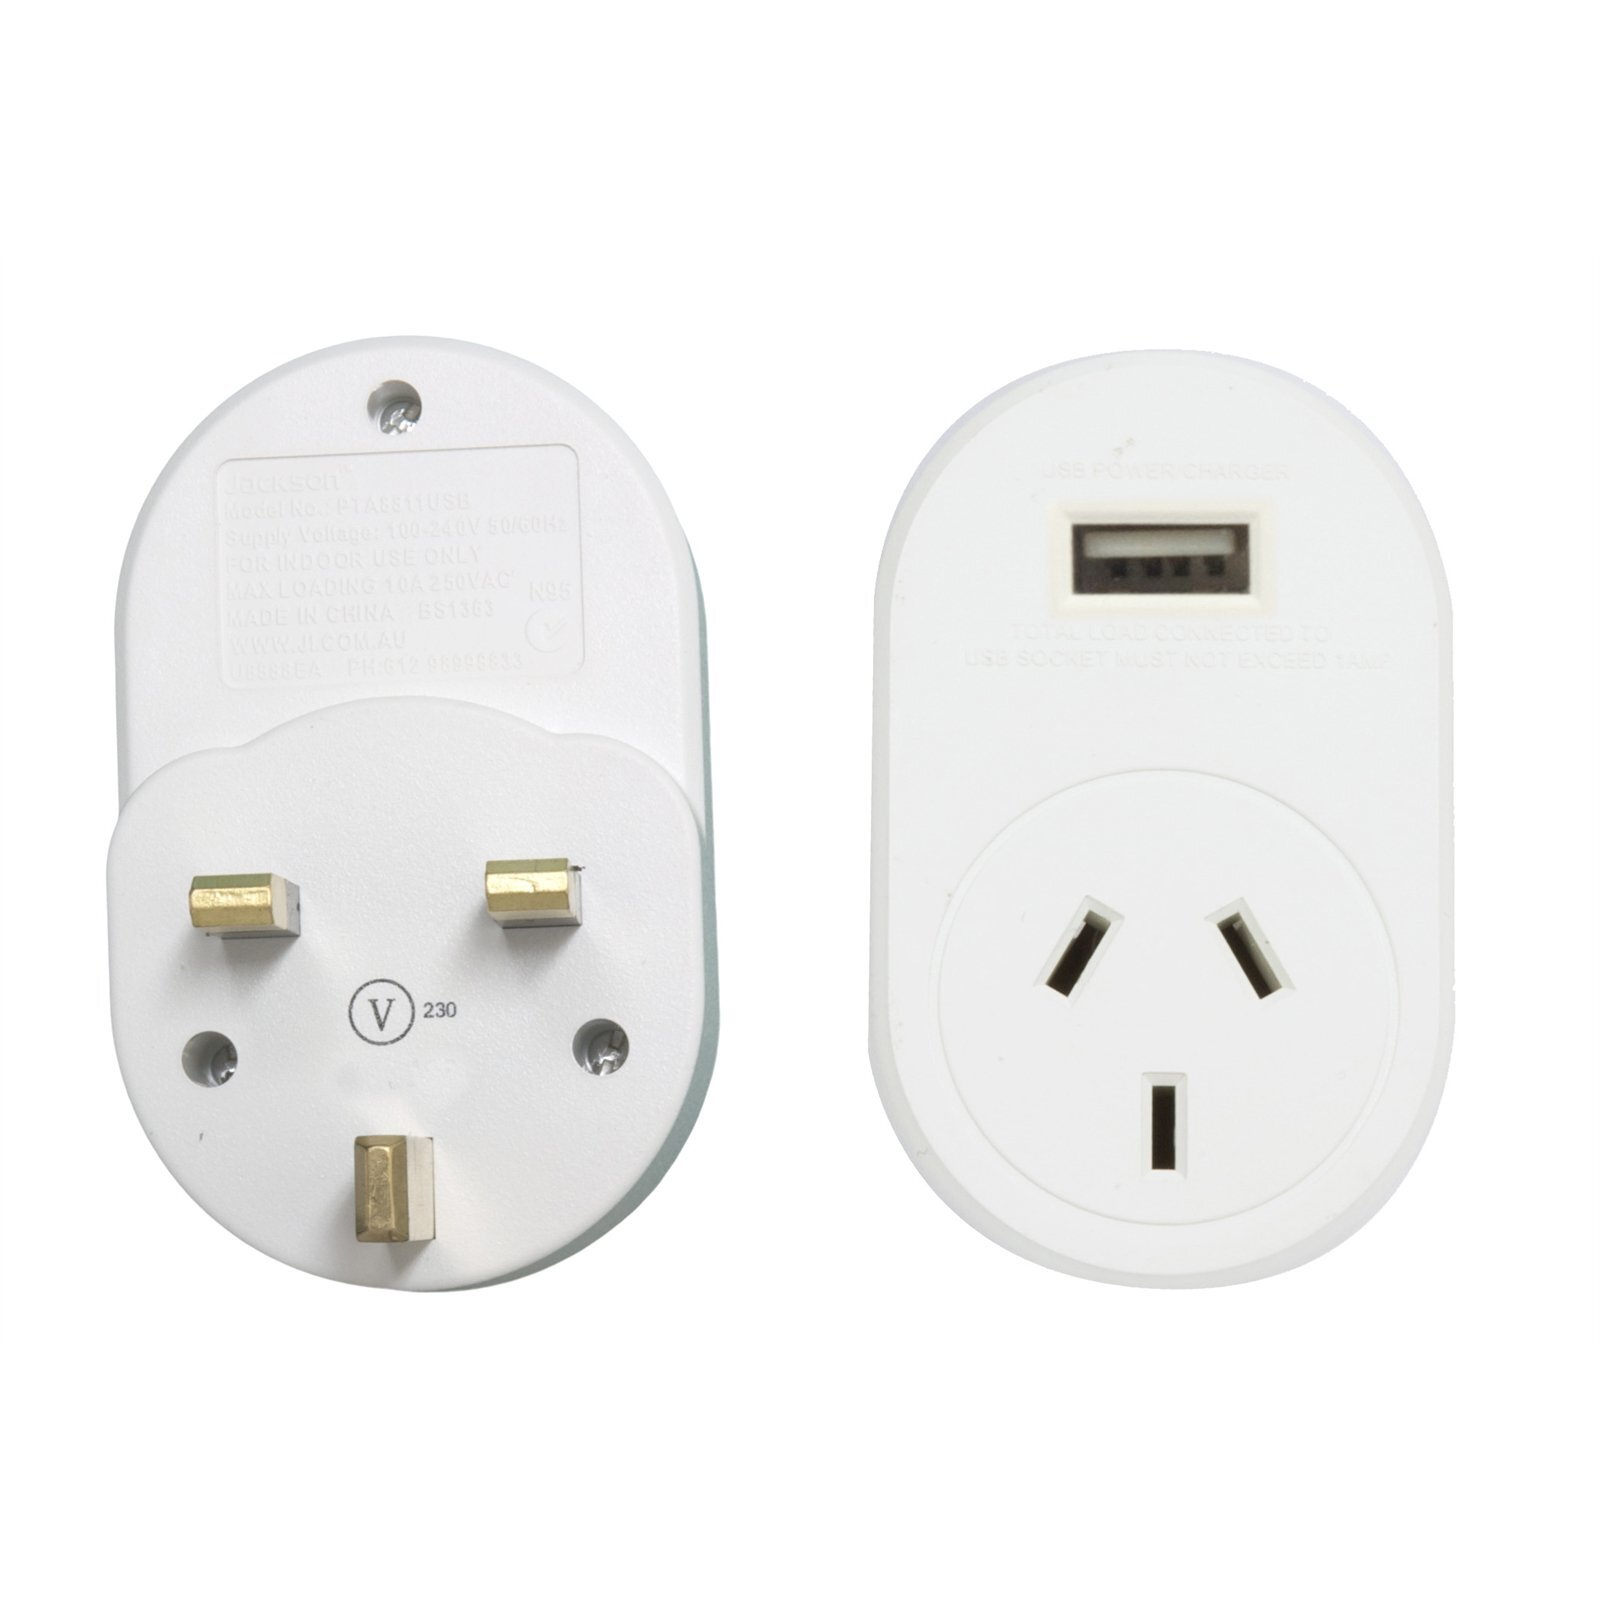 Jackson International Travel Adaptor - Outbound To UK And Hong Kong - With USB Charging Outlet